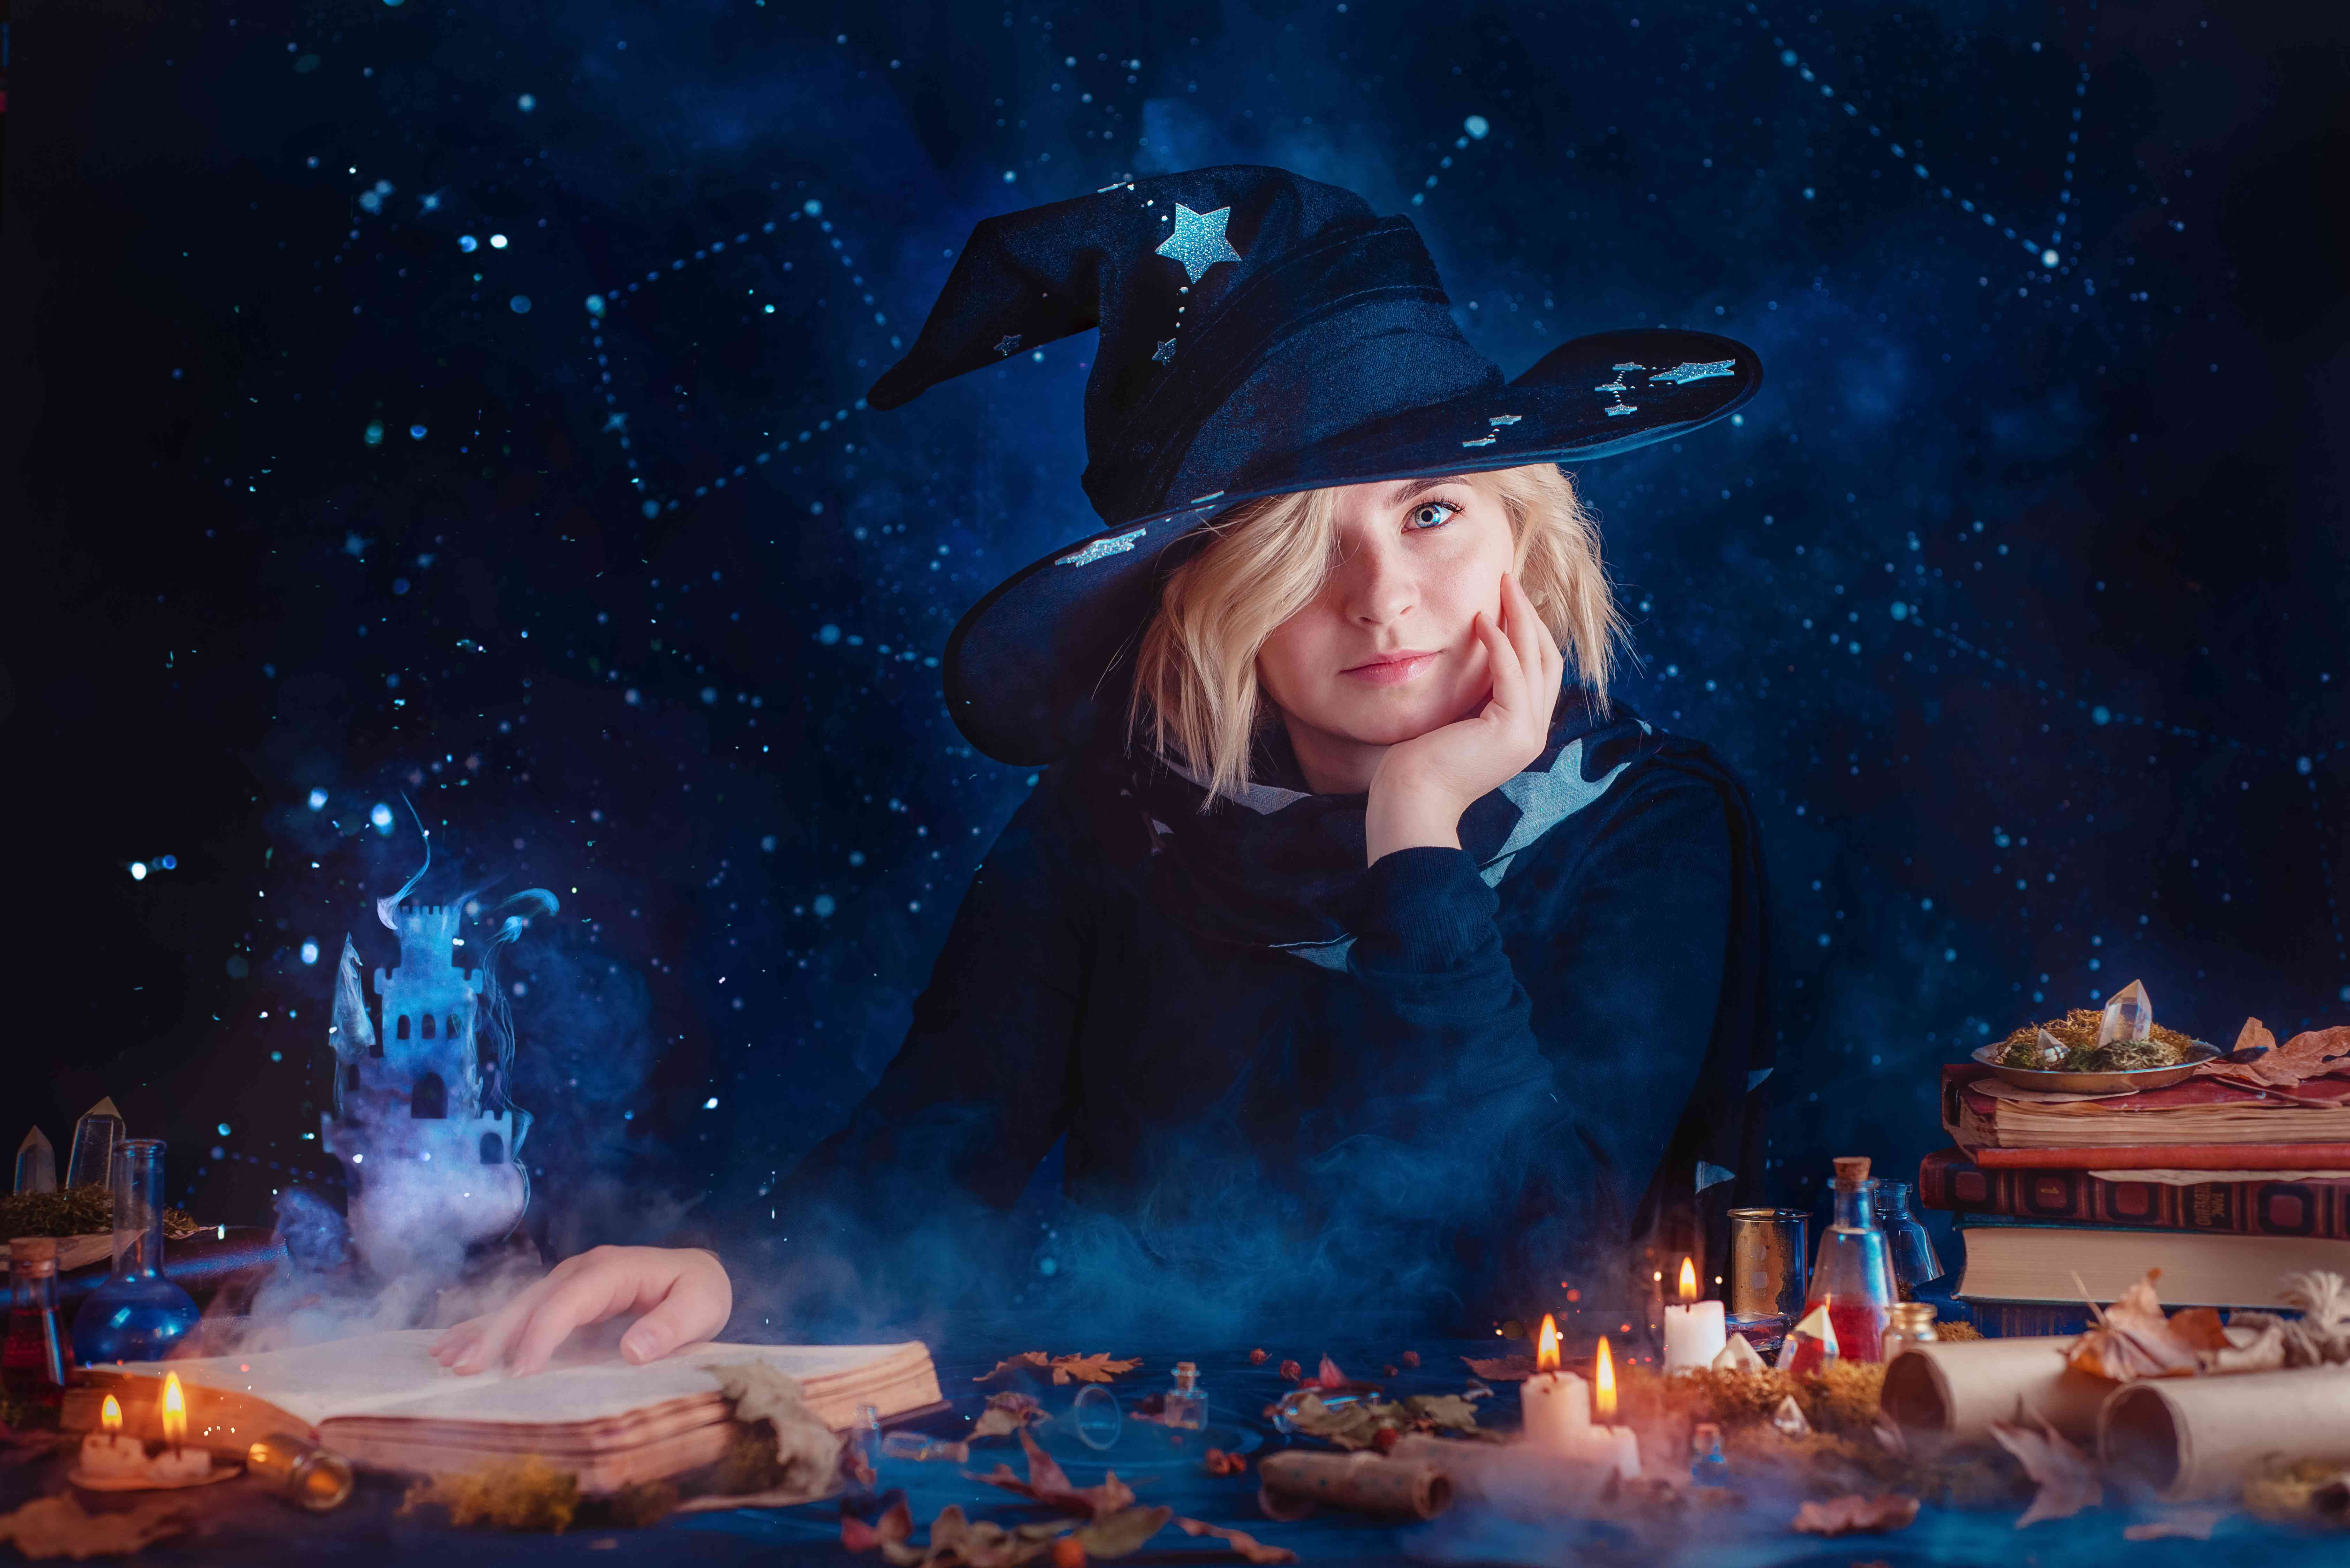 Charming witch in a hat and cloak with stars. Magical workplace with candles, potions and dreamy smoke castle